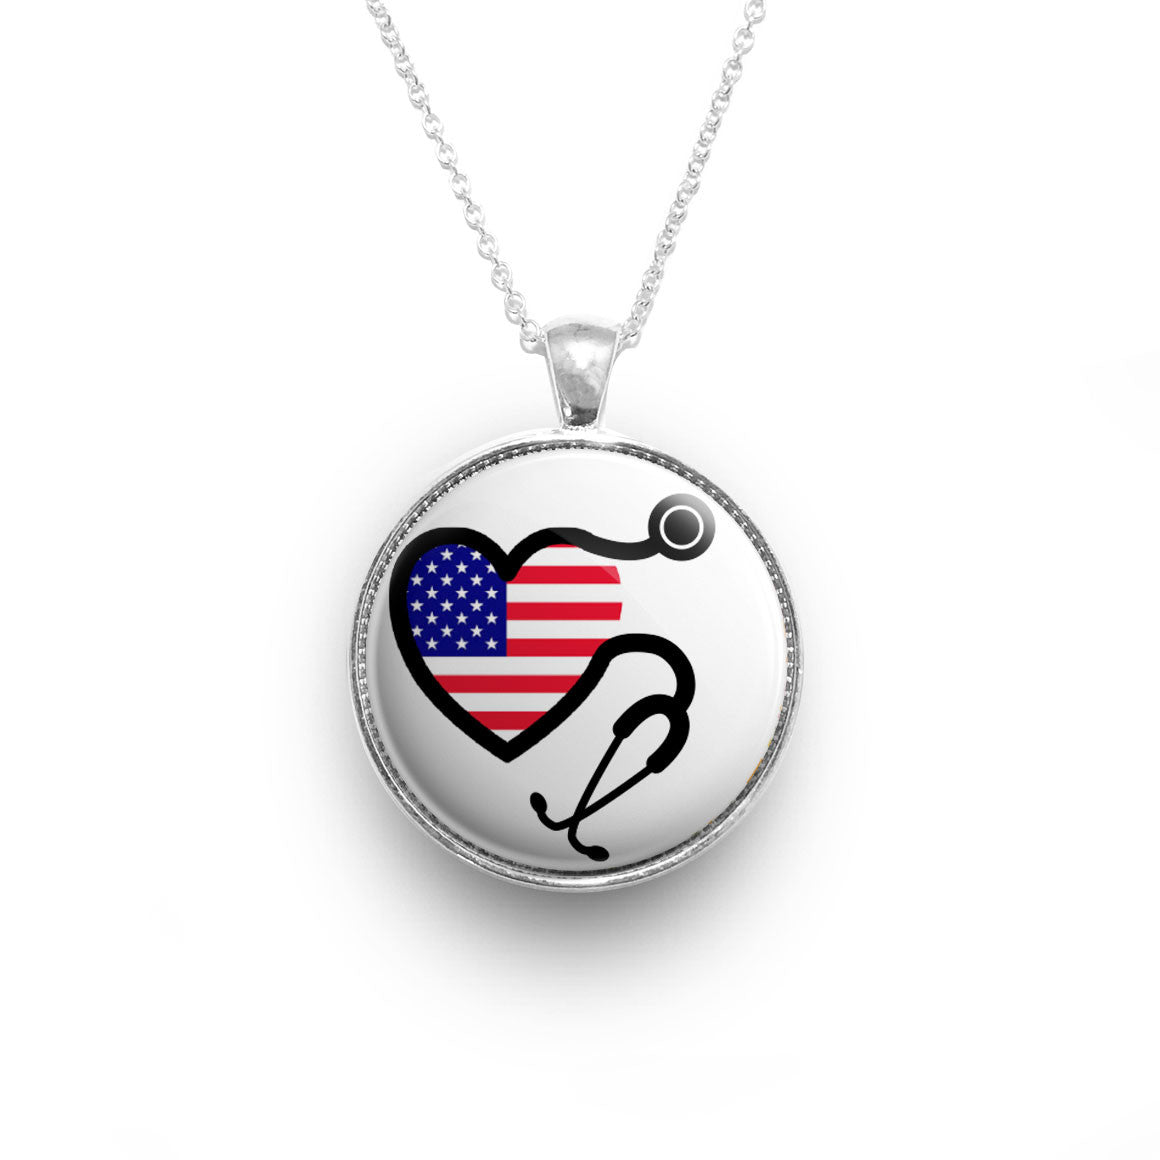 him and stars shop patriot necklace flag american pendant stripes hypnodess for wauoca